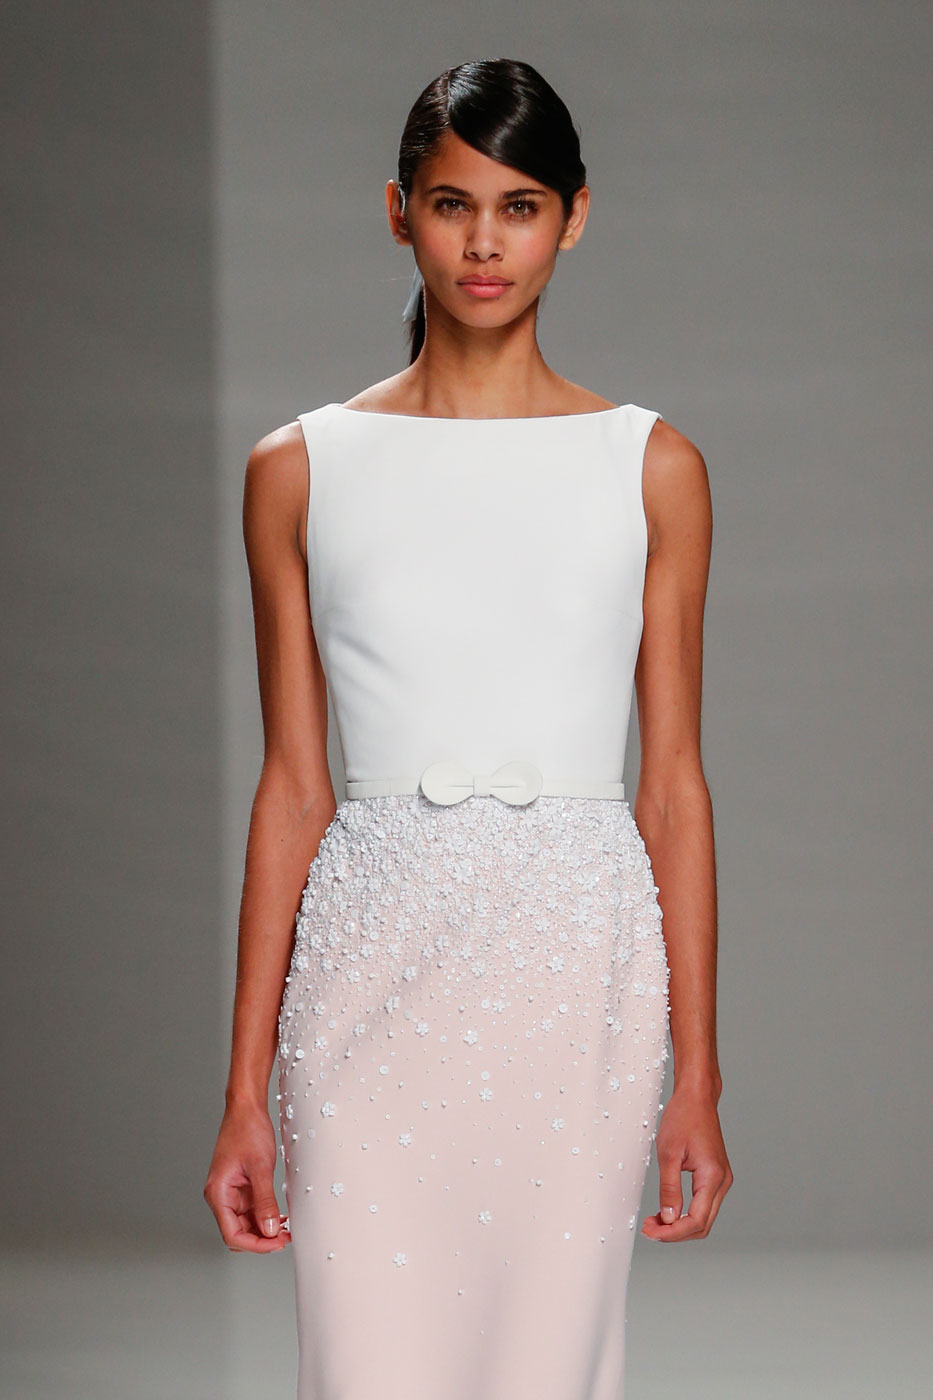 Georges-Hobeika-fashion-runway-show-haute-couture-paris-spring-2015-the-impression-72